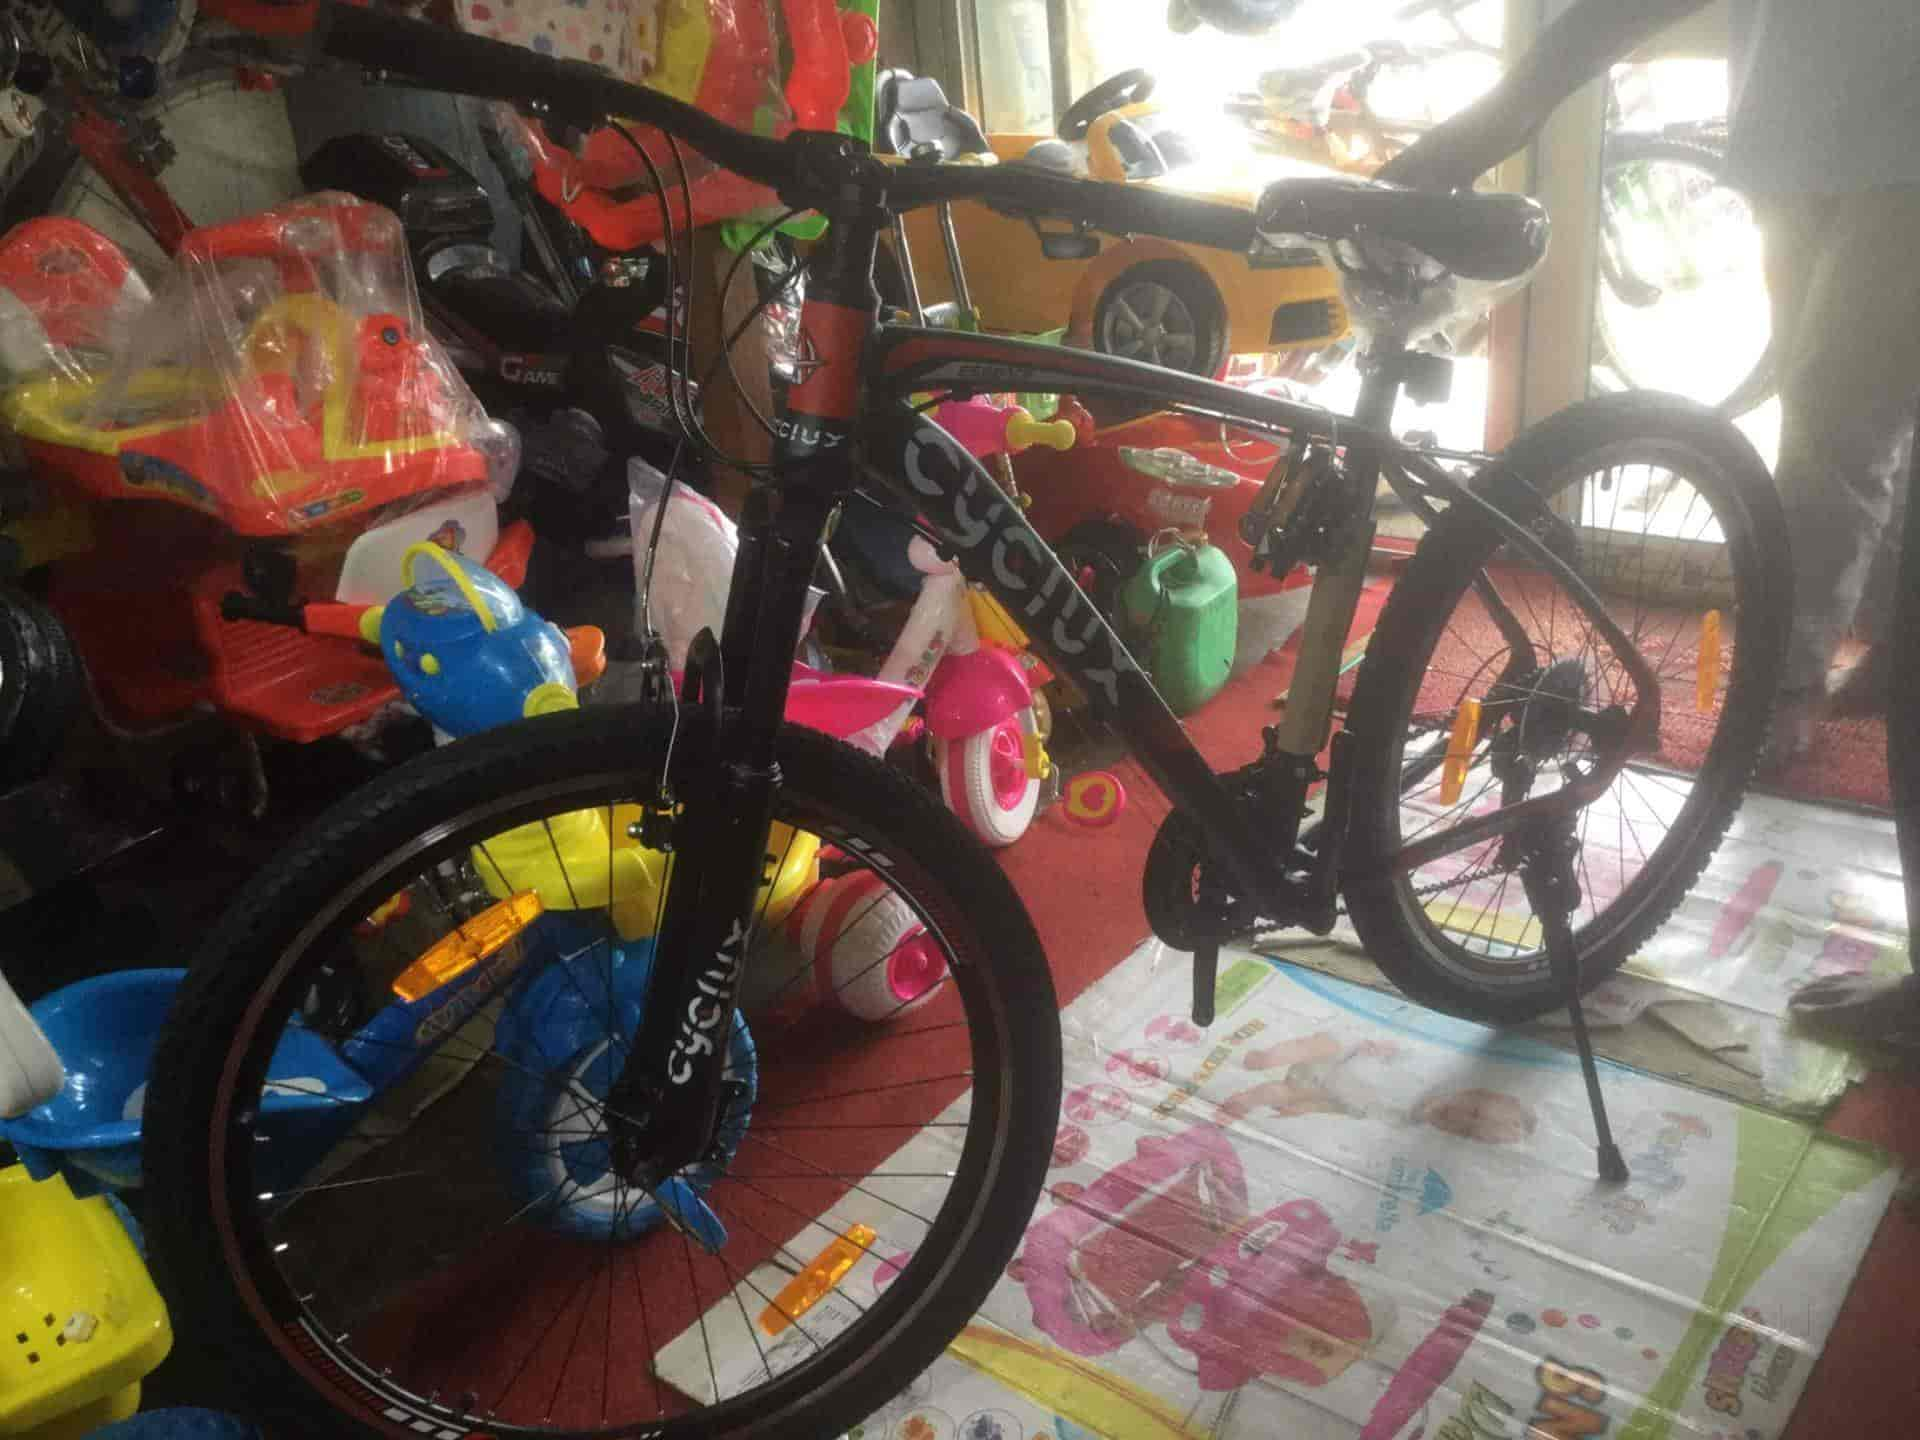 d36ca6a6a48 Sree Ram Cycle Stores, Maligaon Chariali - Bicycle Dealers in Guwahati -  Justdial